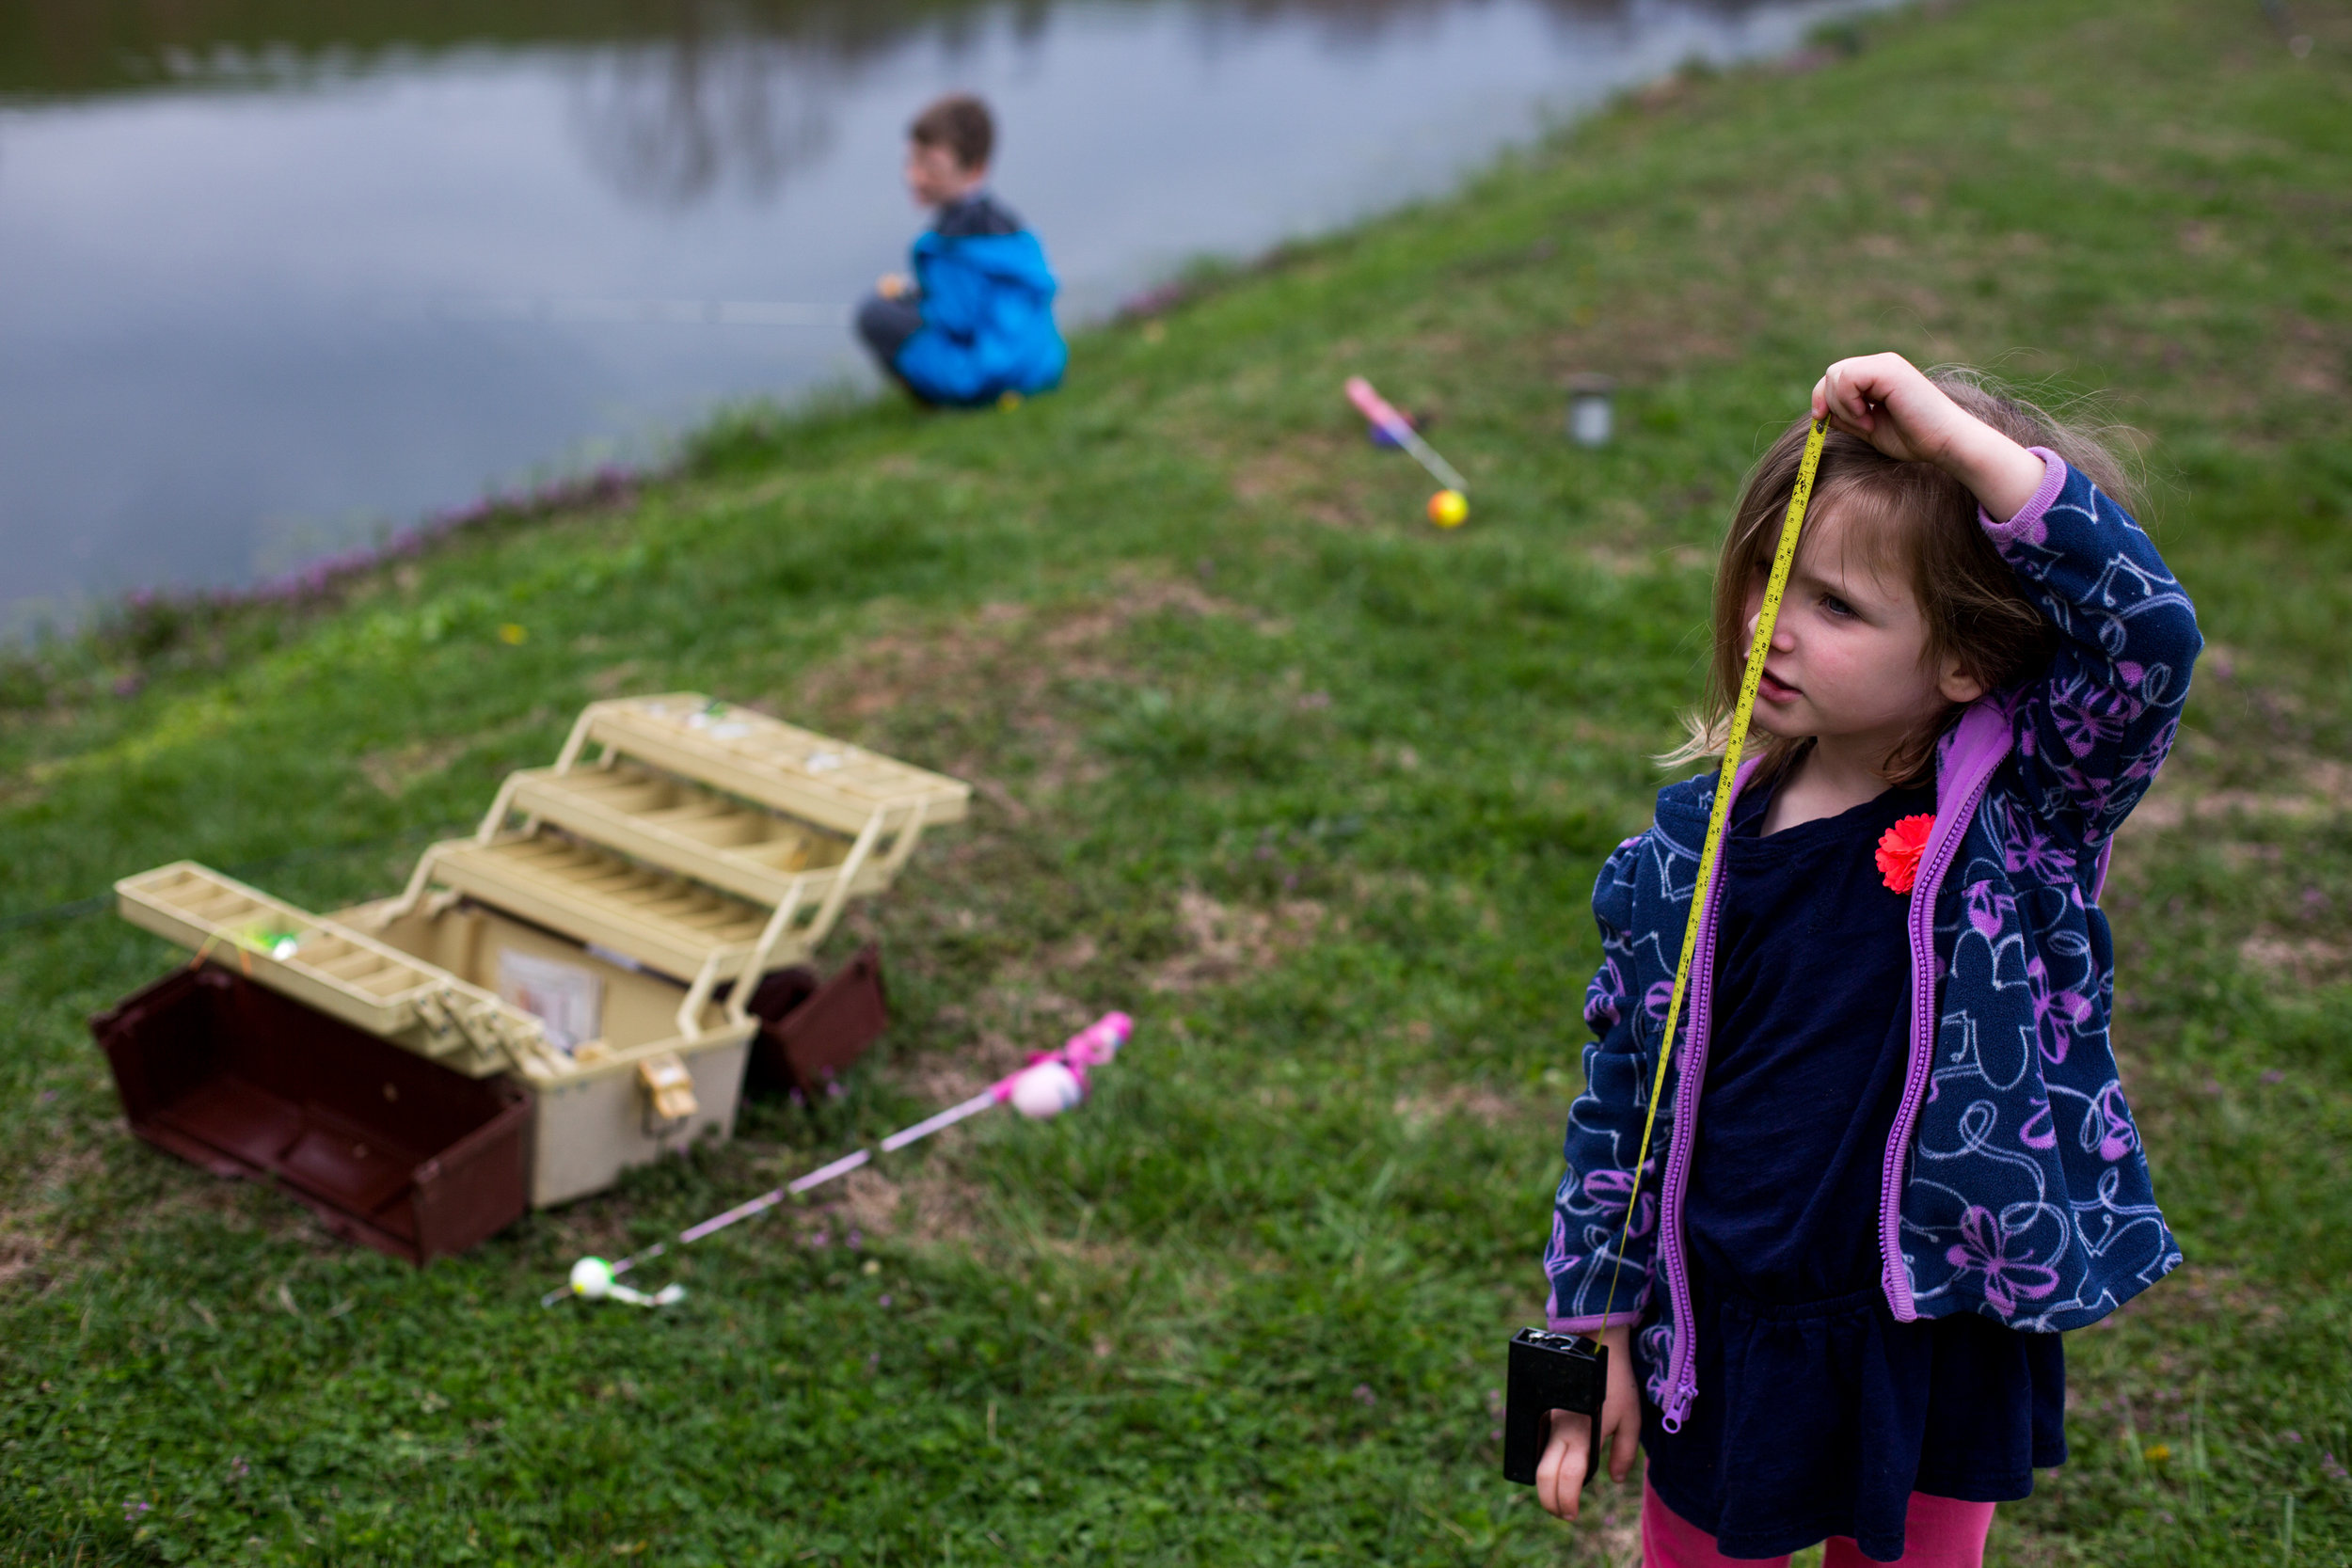 Molly Schepers of Dubois, 4, asked for help in measuring herself while her brother Marshall, 8, fished at their grandmother's pond in Dubois on Tuesday.